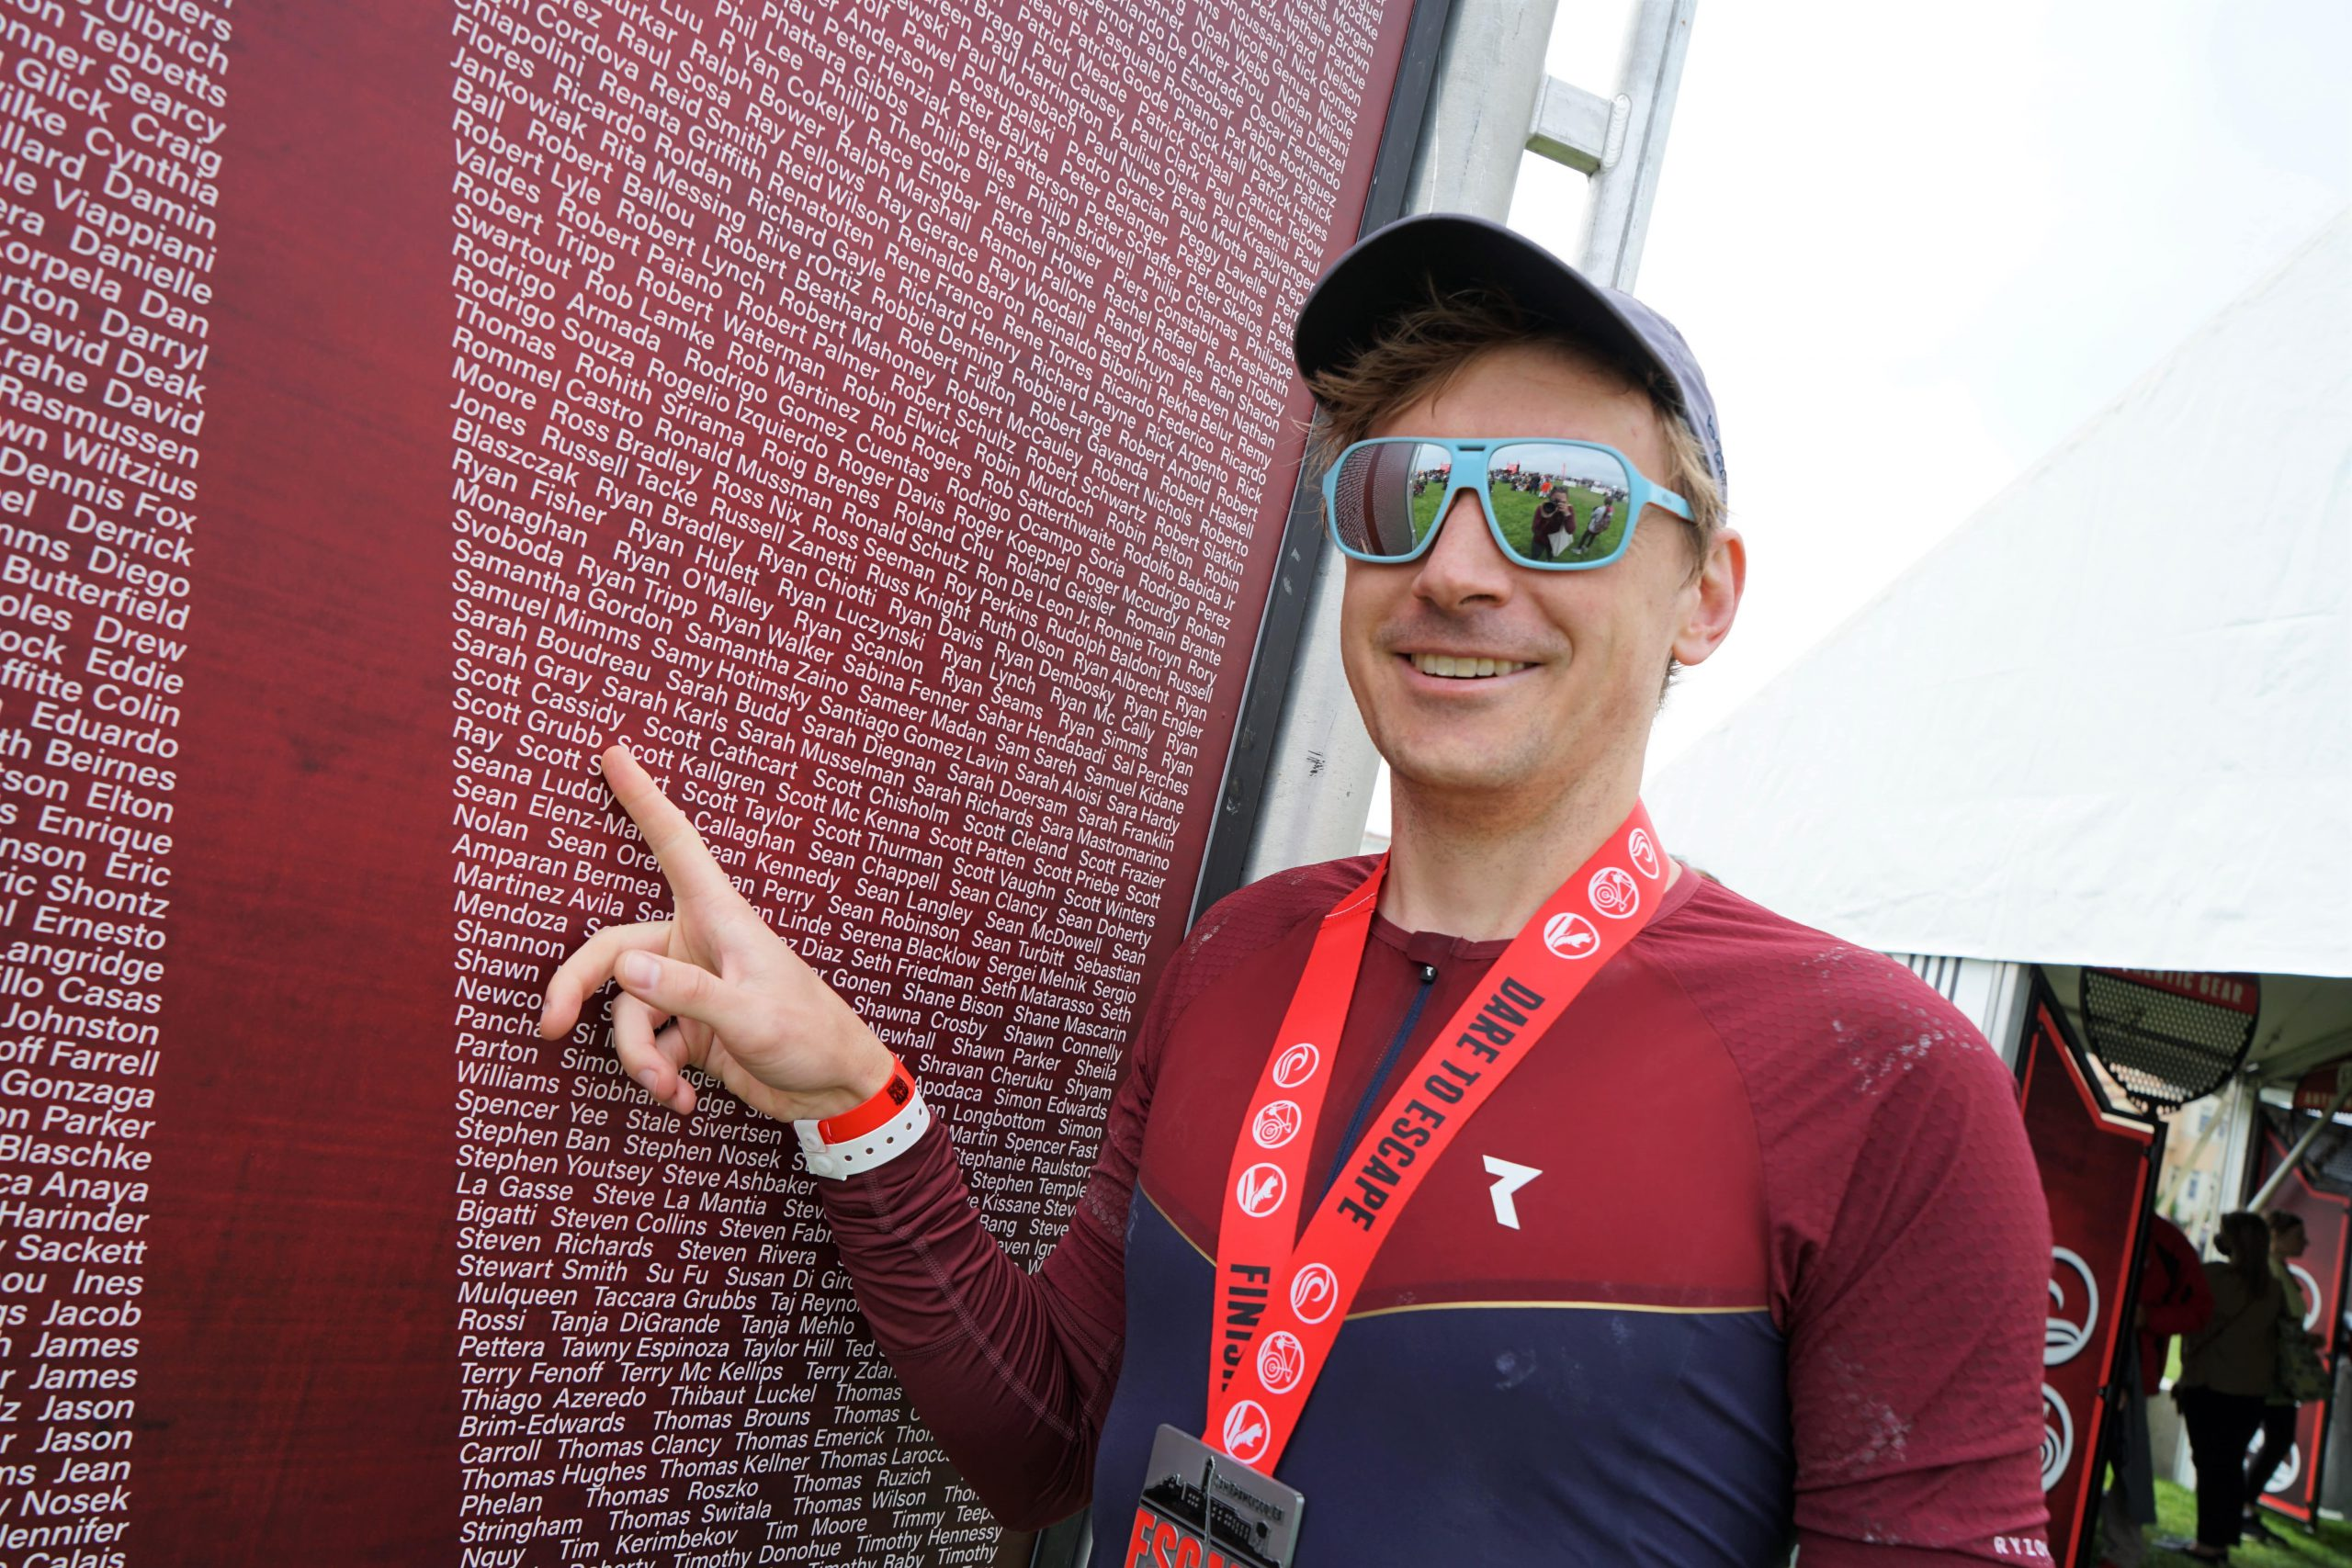 Scott Grubb points to his name as one of the 2,000 participants in the Escape from Alcatraz Triathlon in San Francisco, CA